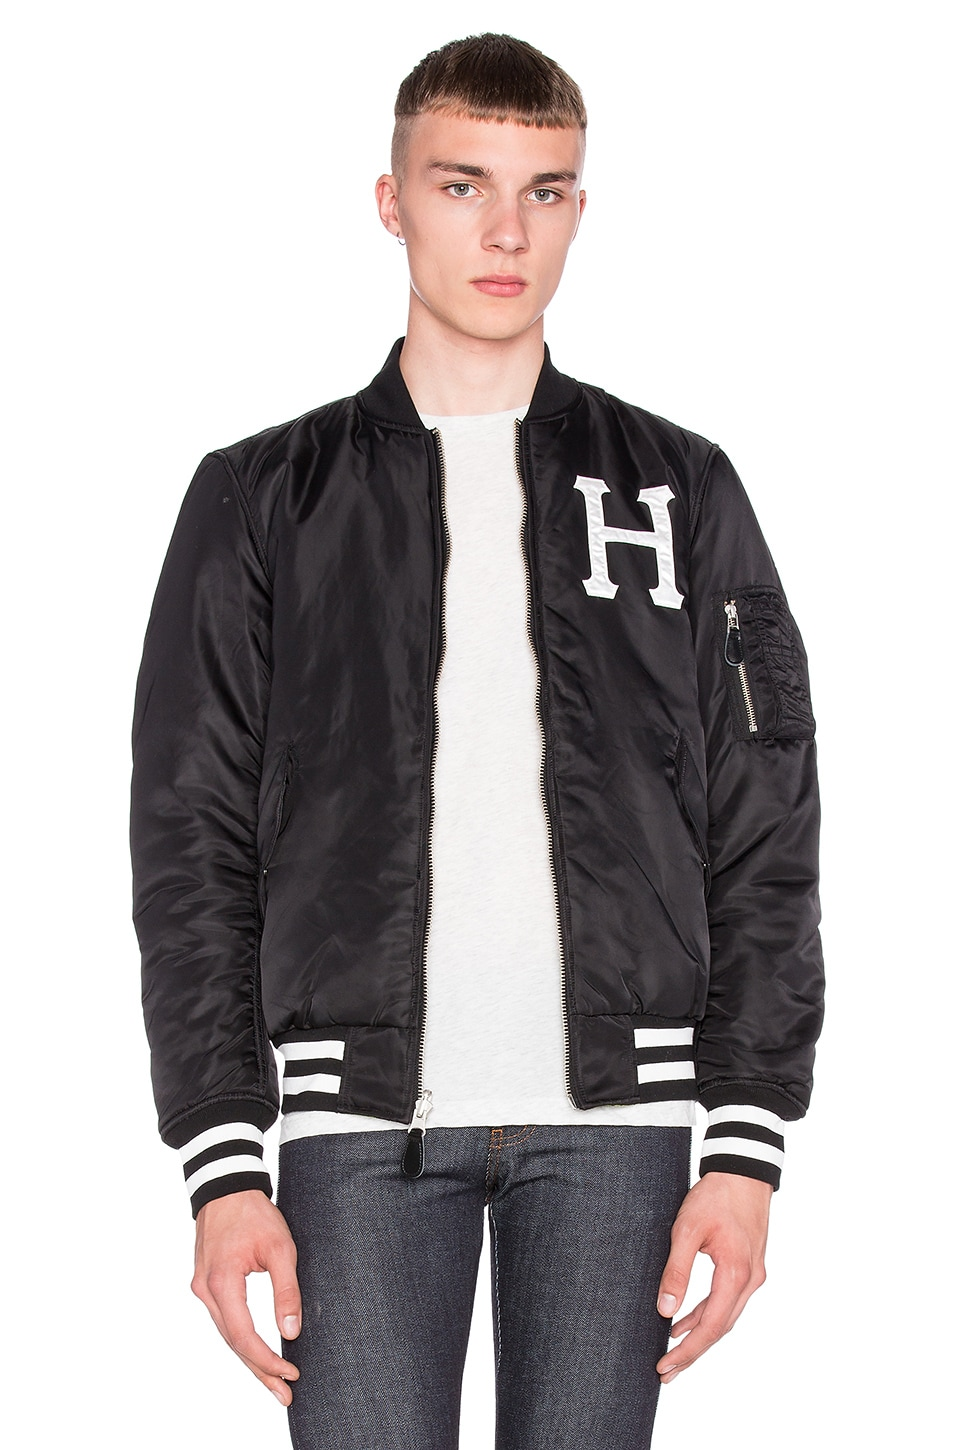 authentic quite nice good quality Huf MA-1 Reversible Bomber Jacket in Black & Camo   REVOLVE